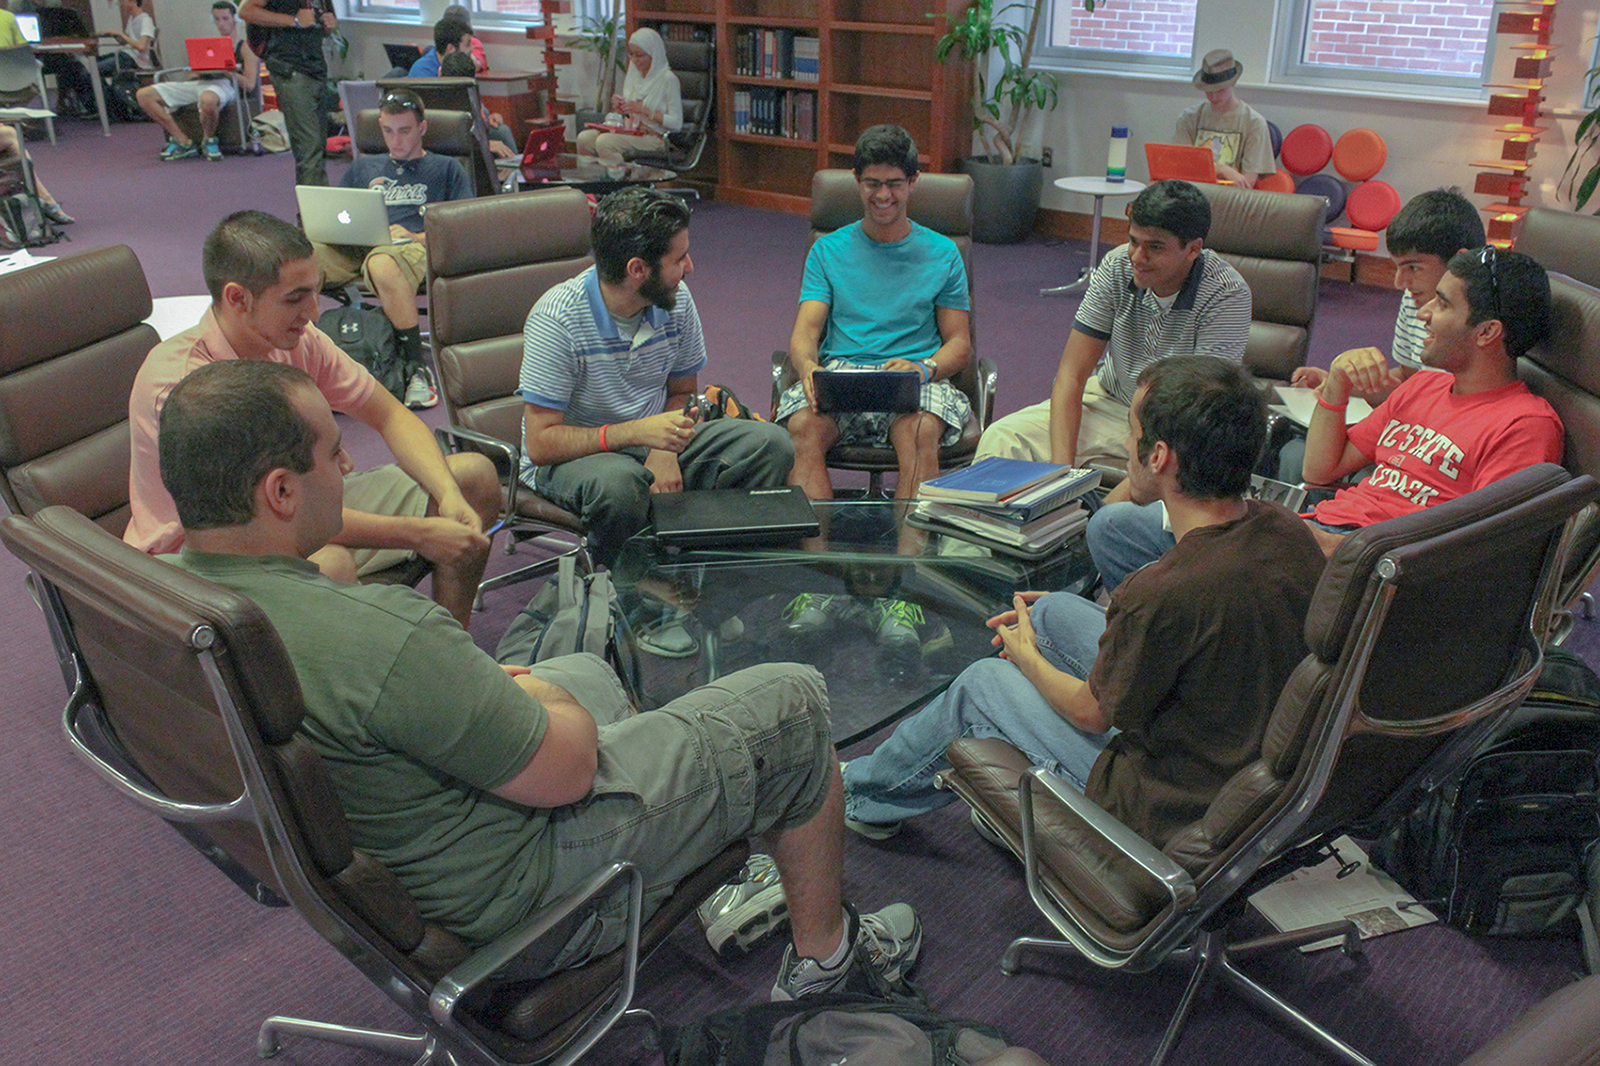 A group of students sitting around a low glass table in the learning commons at DH Hill